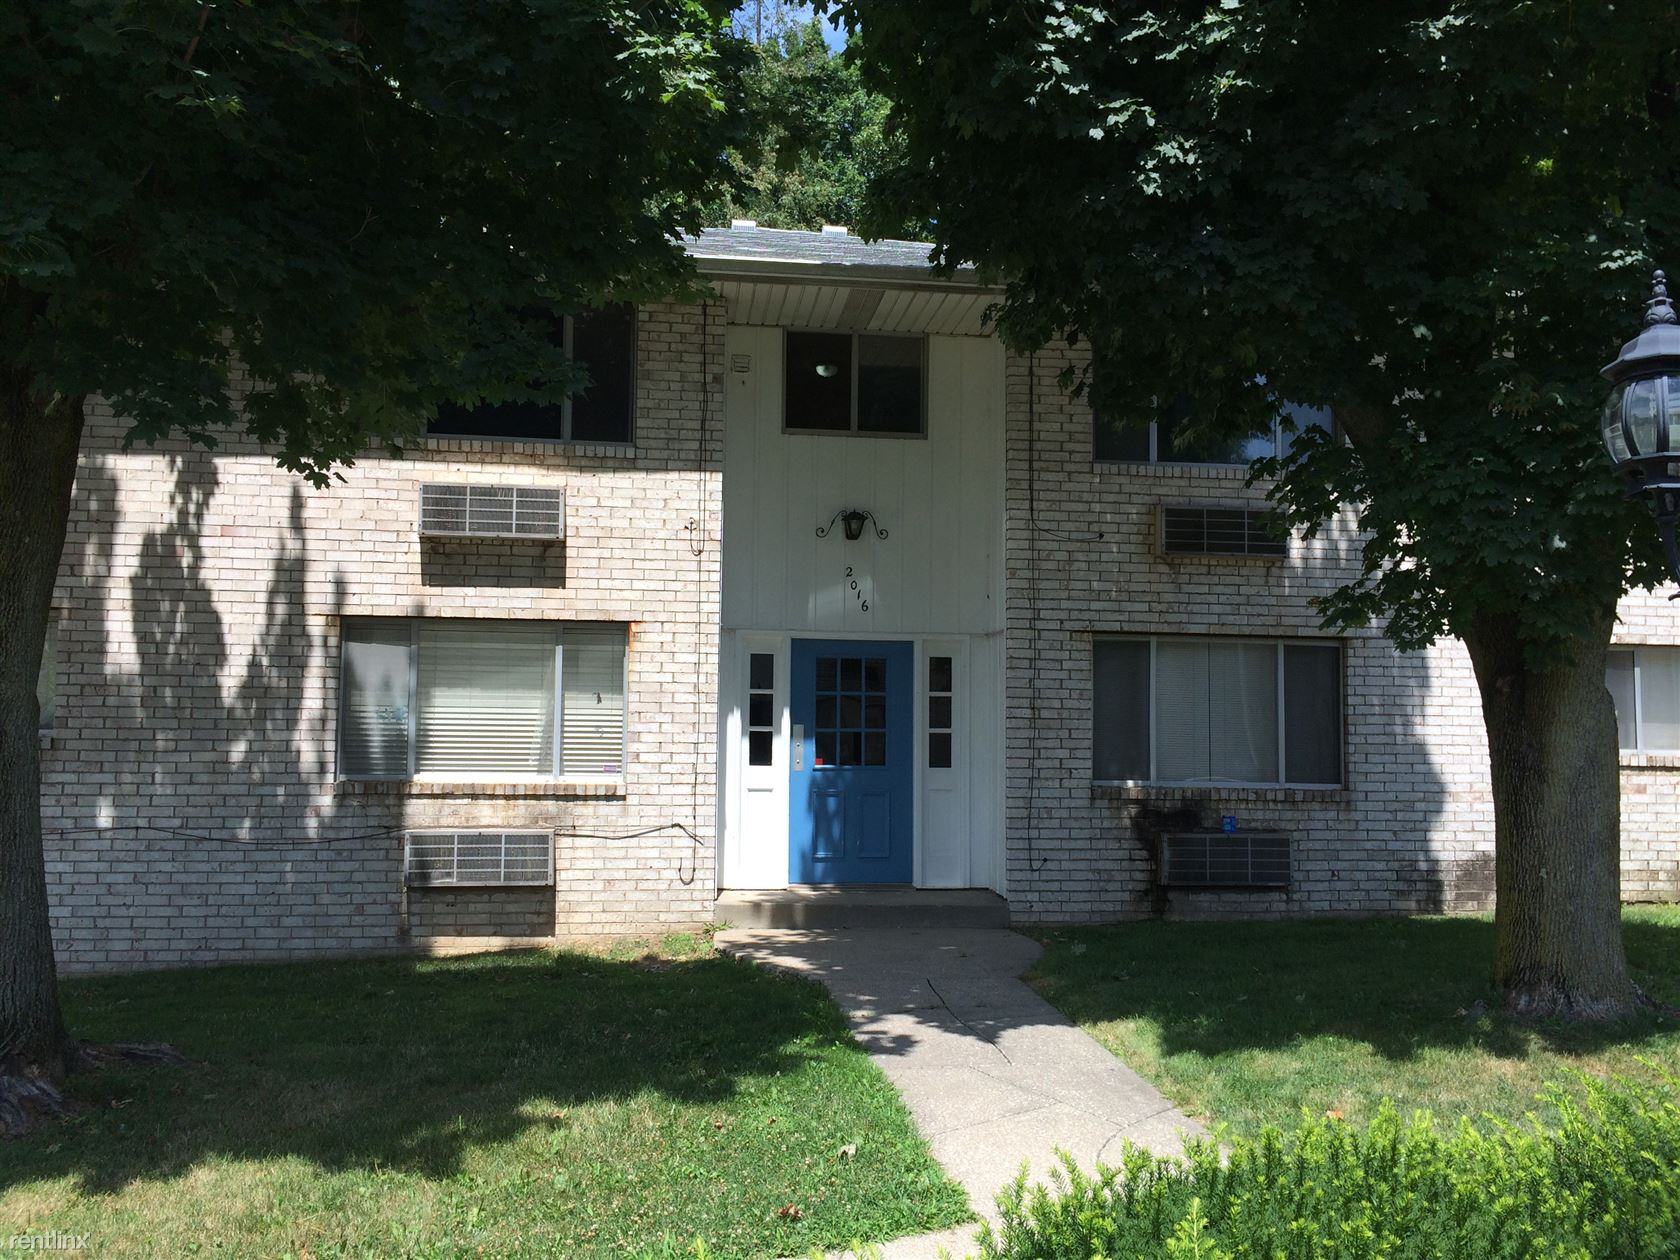 2000 Woodlawn Ave NW, Canton, OH - $550